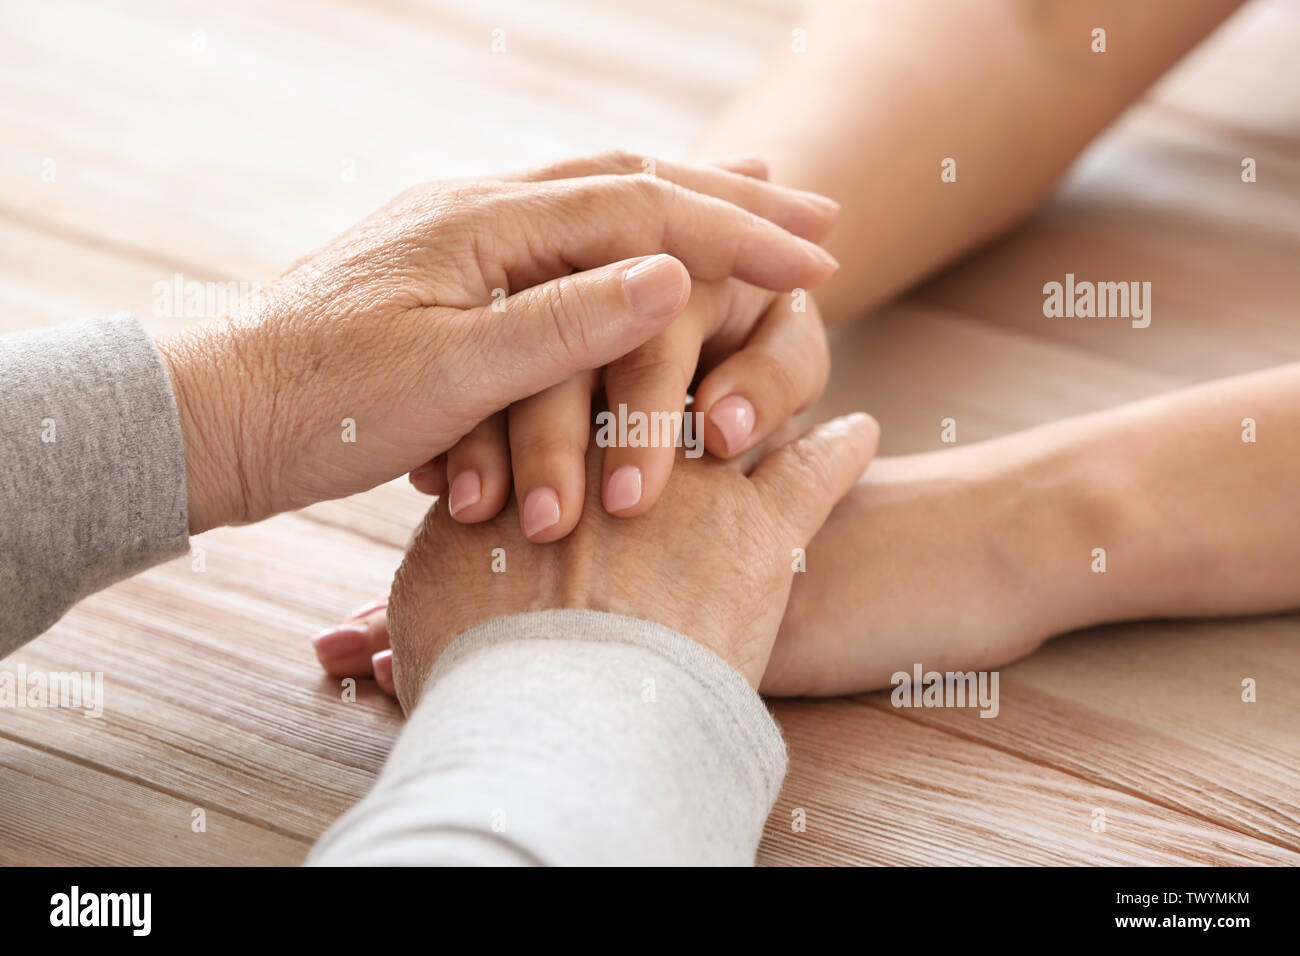 Hands of elderly woman and her granddaughter, closeup. Concept of care and support - Stock Image